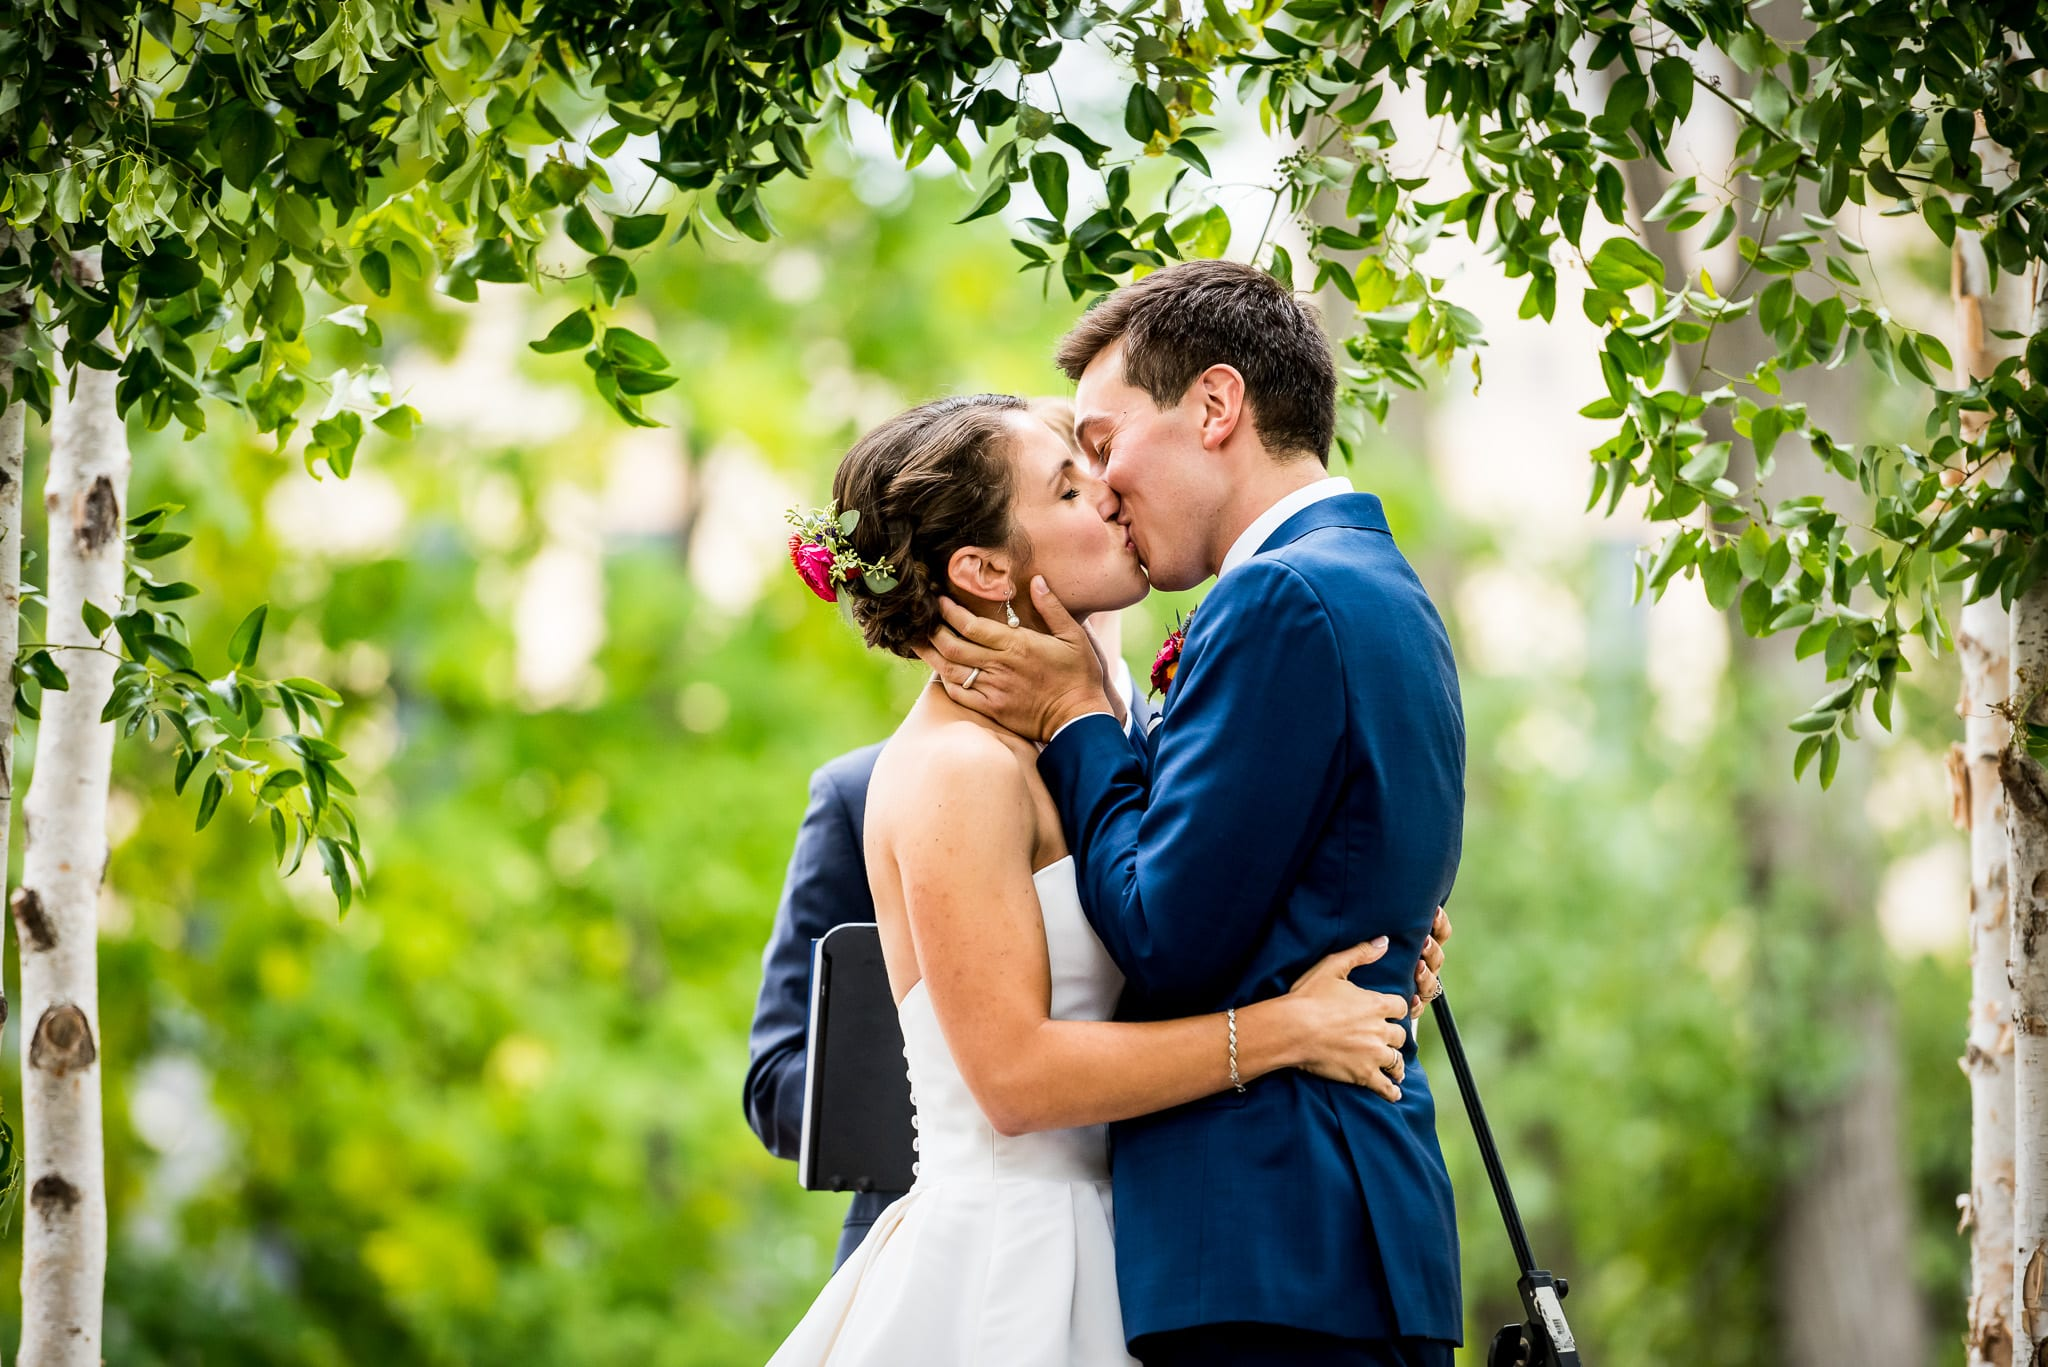 Bride and groom's first kiss during their outdoor wedding ceremony at the Nicollet Island Pavilion in Minneapolis